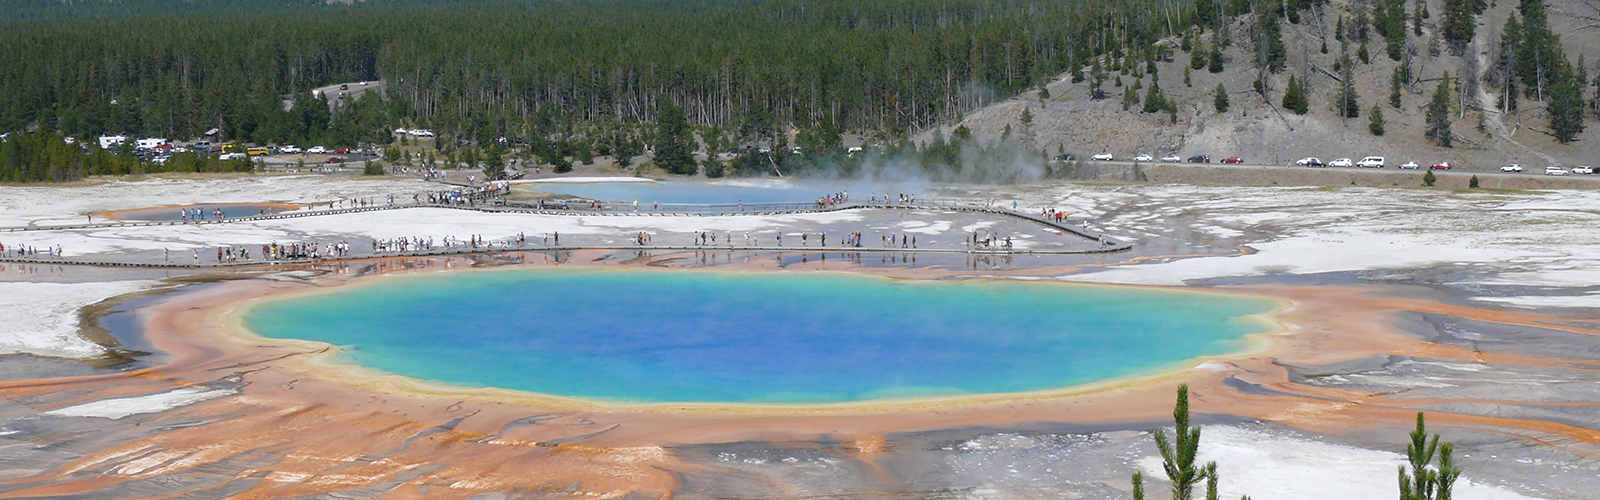 A photograph of a colorful prismatic pool taken by a UW-Madison Geosciences professor.